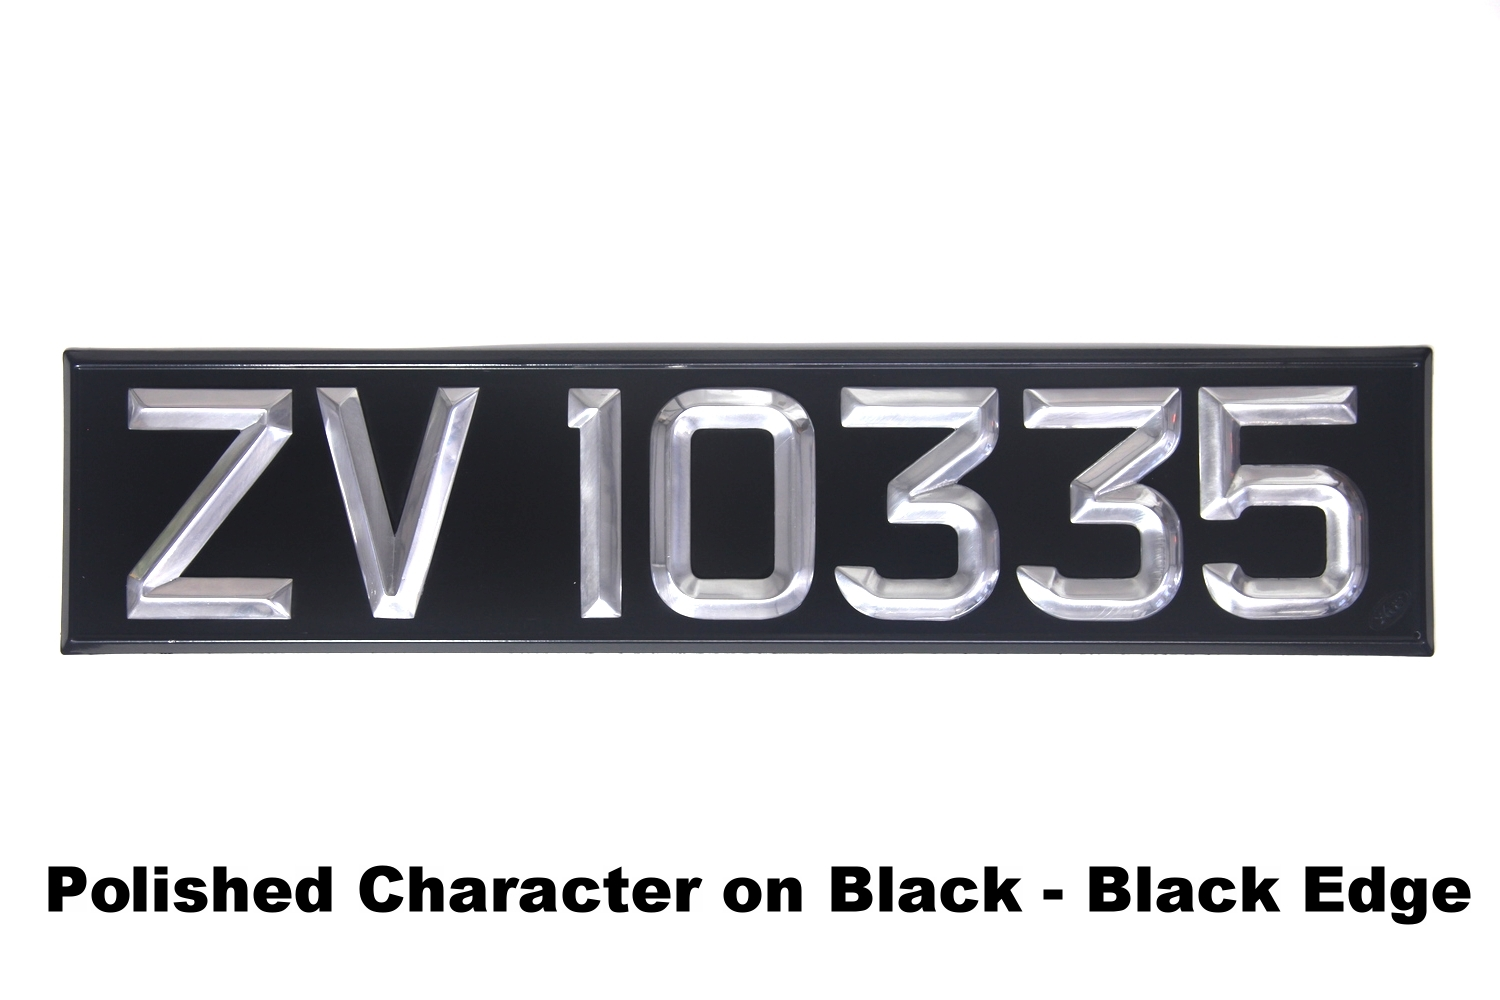 Polished Character on Black - Black Edge